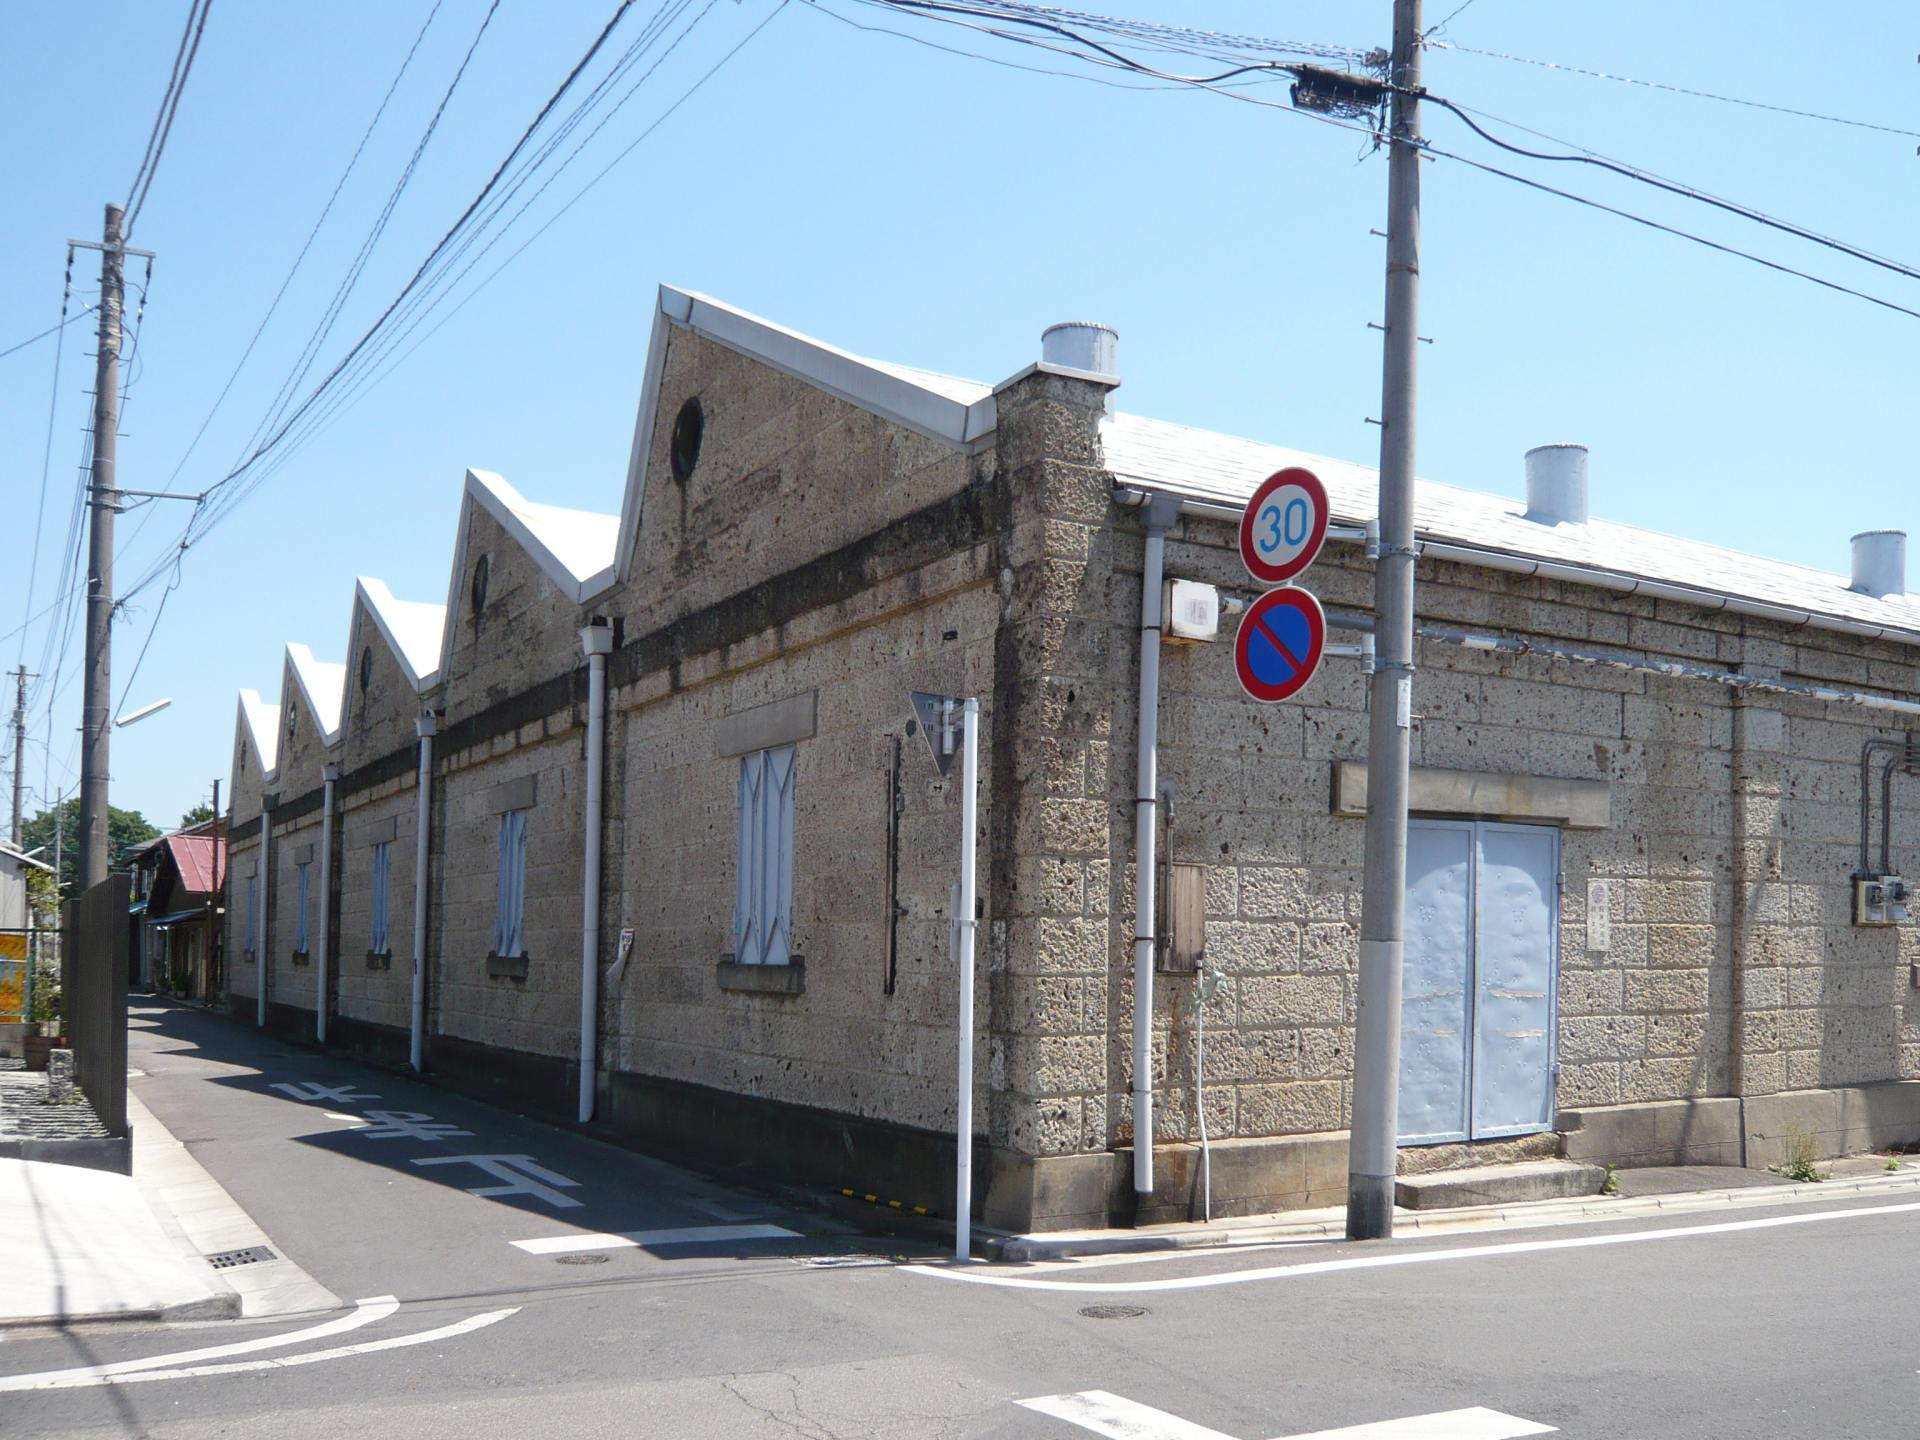 Former Soga Textile Mill. The saw-tooth roofed building is a landmark of the area.